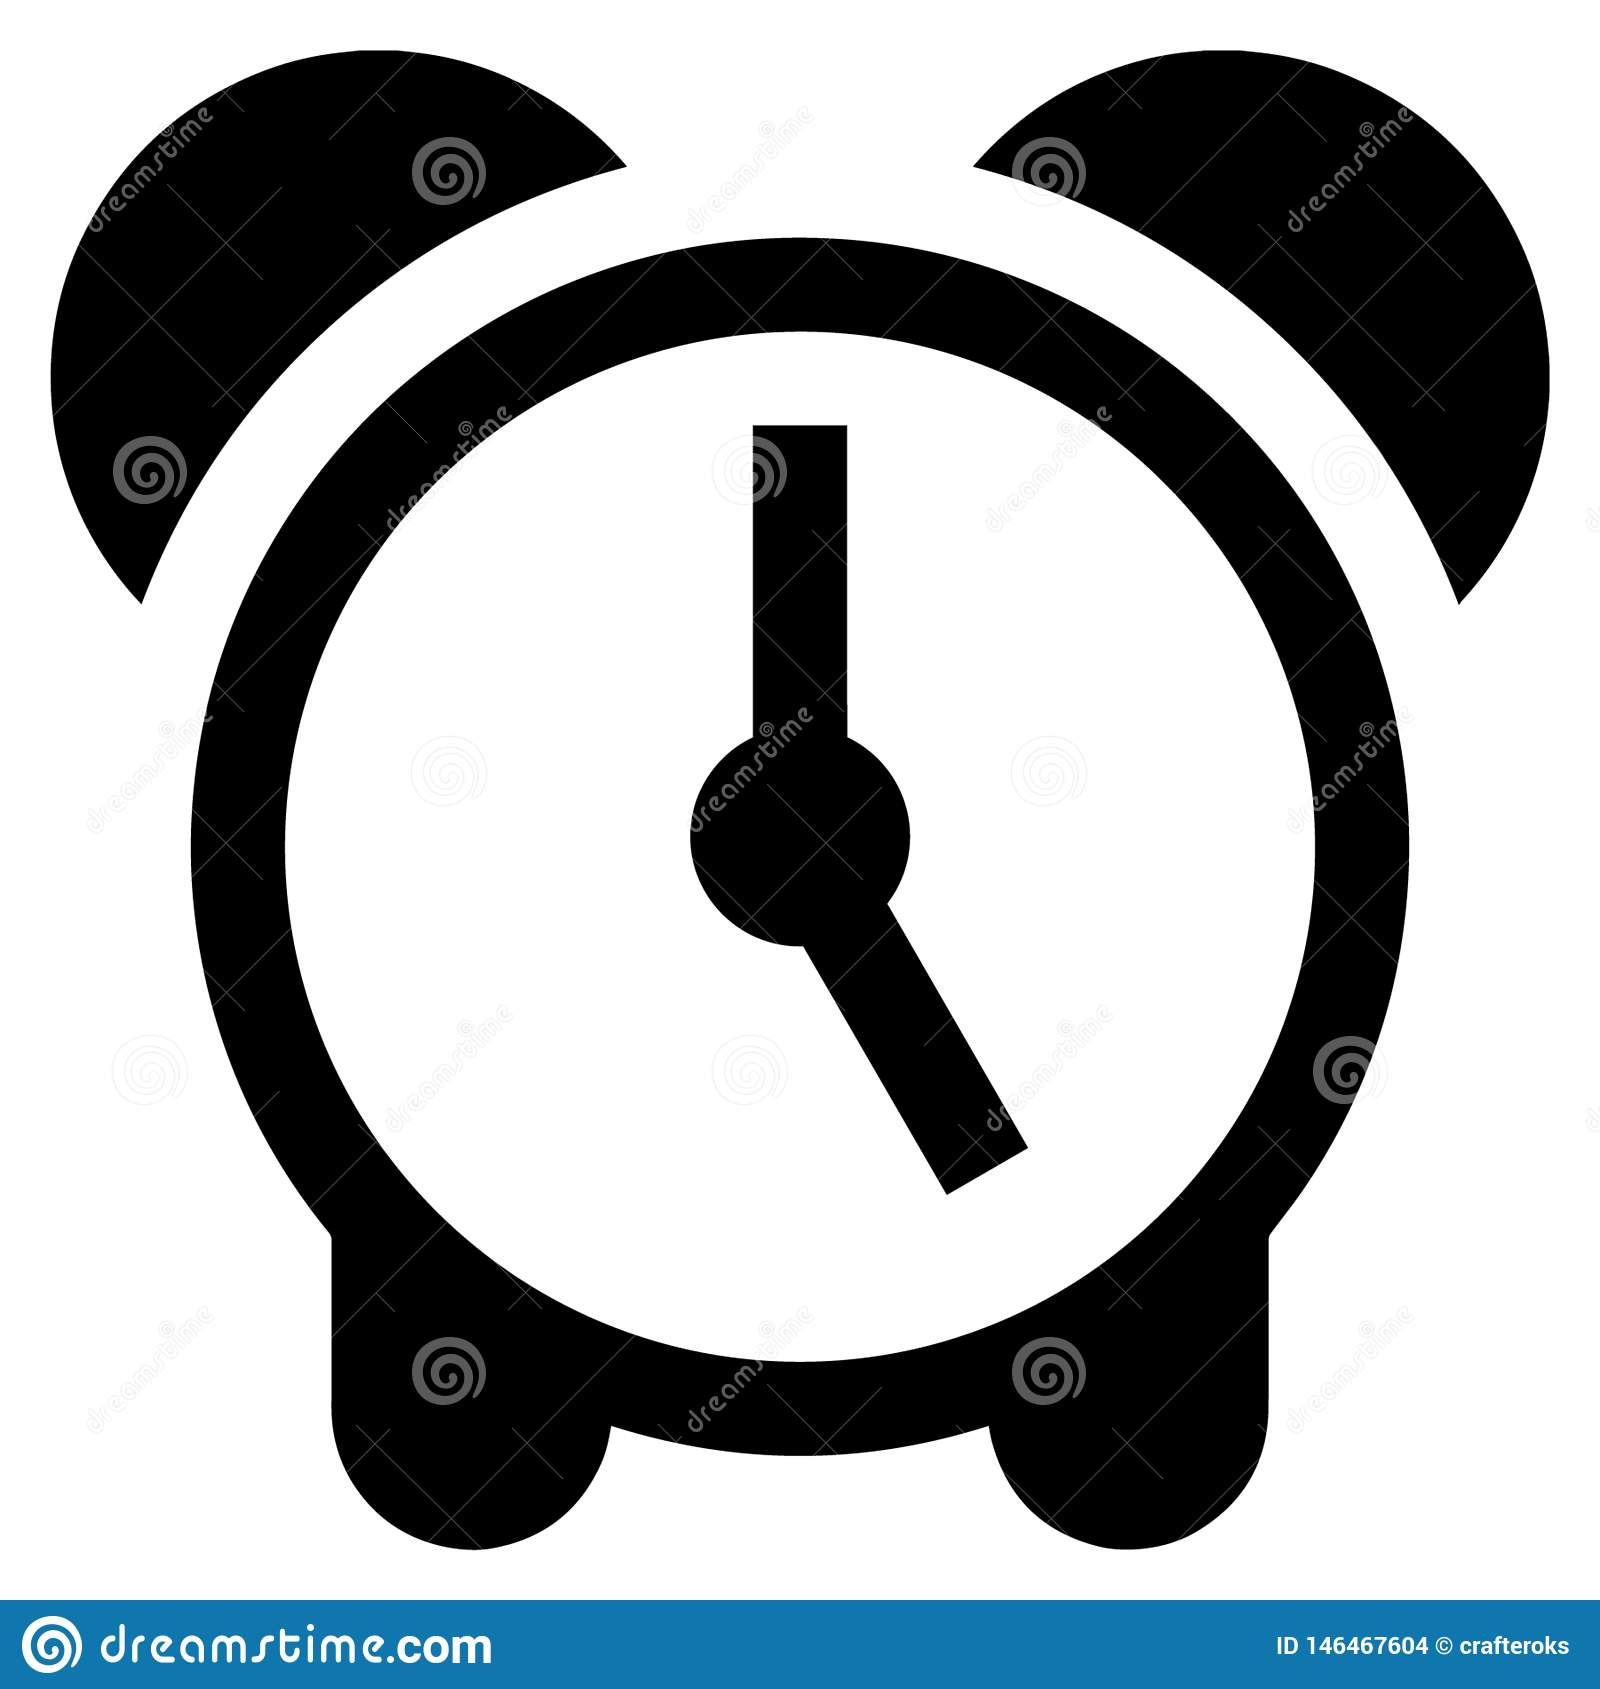 Alarm Clock Vector Eps Hand Drawn Crafteroks Svg Free, Free